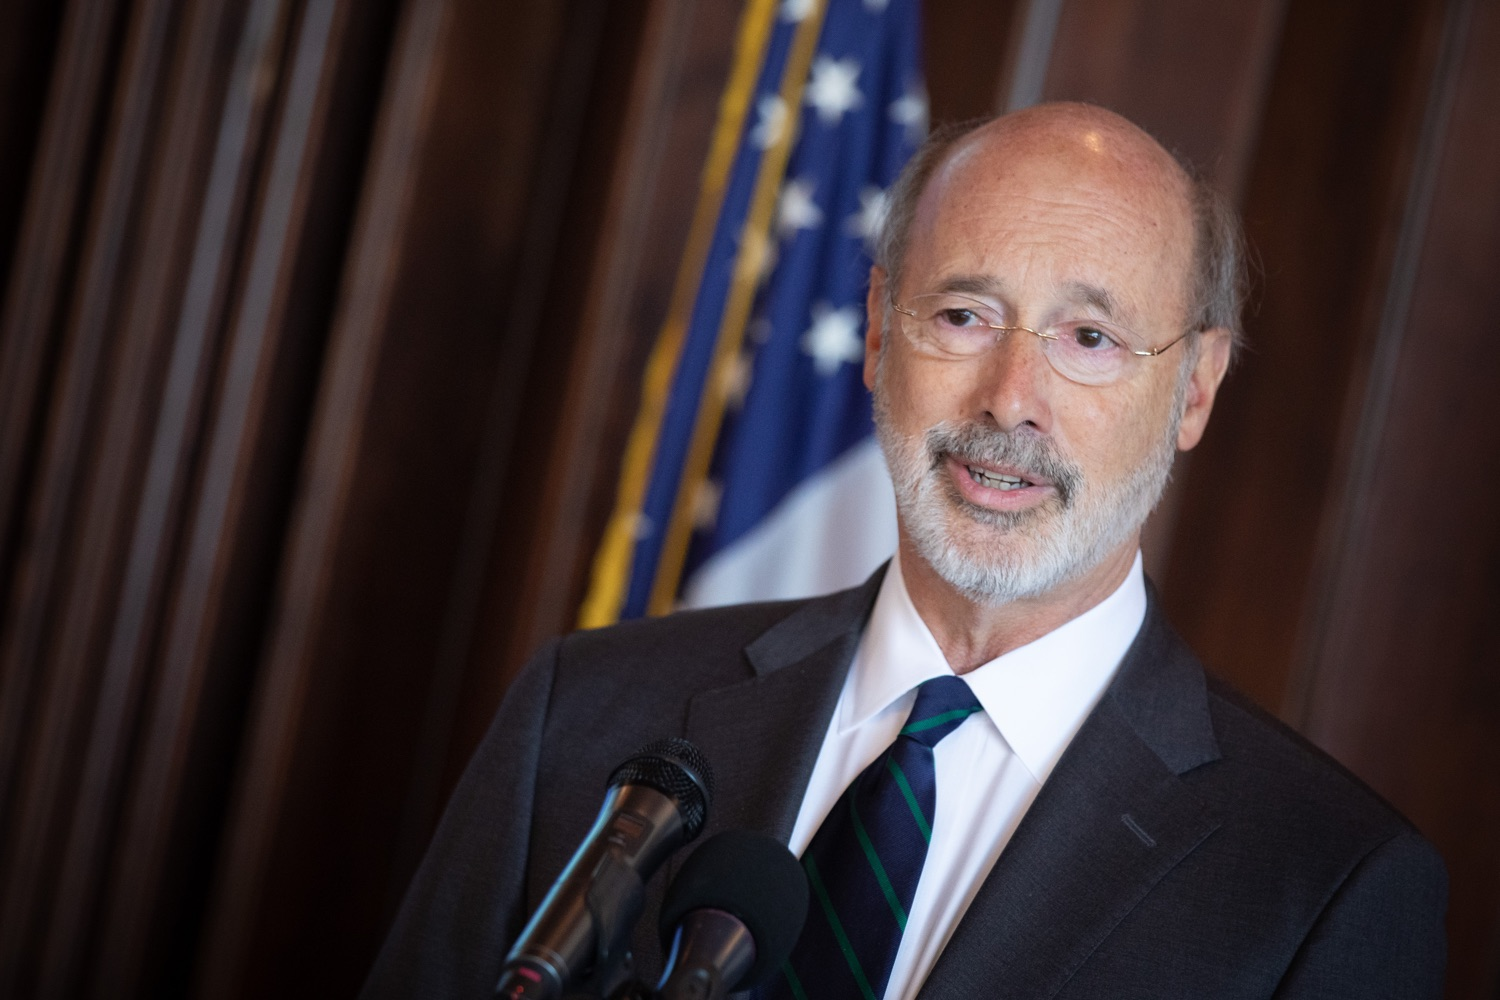 """<a href=""""https://filesource.wostreaming.net/commonwealthofpa/photo/17467_gov_opioids_dz_003.JPG"""" target=""""_blank"""">⇣Download Photo<br></a>Boalsburg, PA  Governor Tom Wolf addressing the summit. Governor Tom Wolf today kicked off his administrations first Opioid Command Center Opioid Summit: Think Globally, Act Locally, which brought together 200 individuals helping their communities fight the opioid crisis, including community organizations, non-profits, schools, health care workers, addiction and recovery specialists, and families affected by the opioid crisis.  Tuesday, October 1, 2019"""